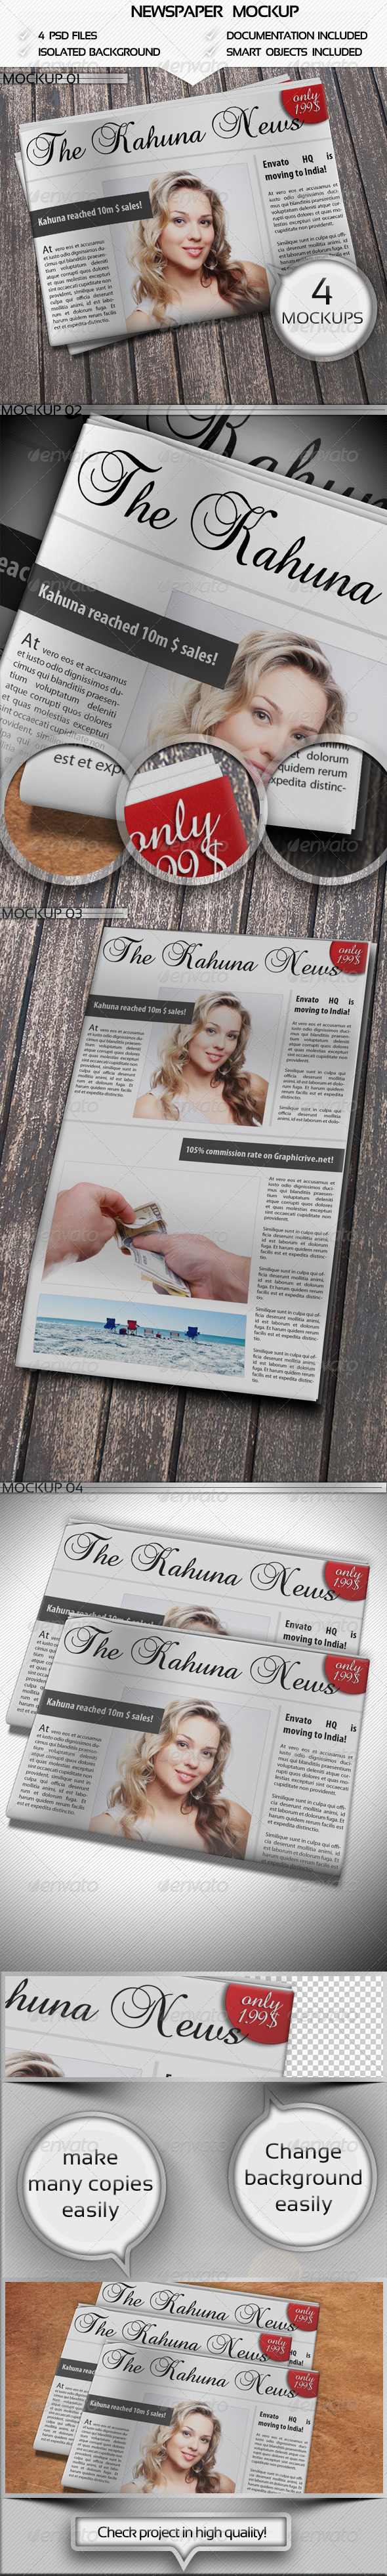 GraphicRiver Newspaper Mockup 4497571